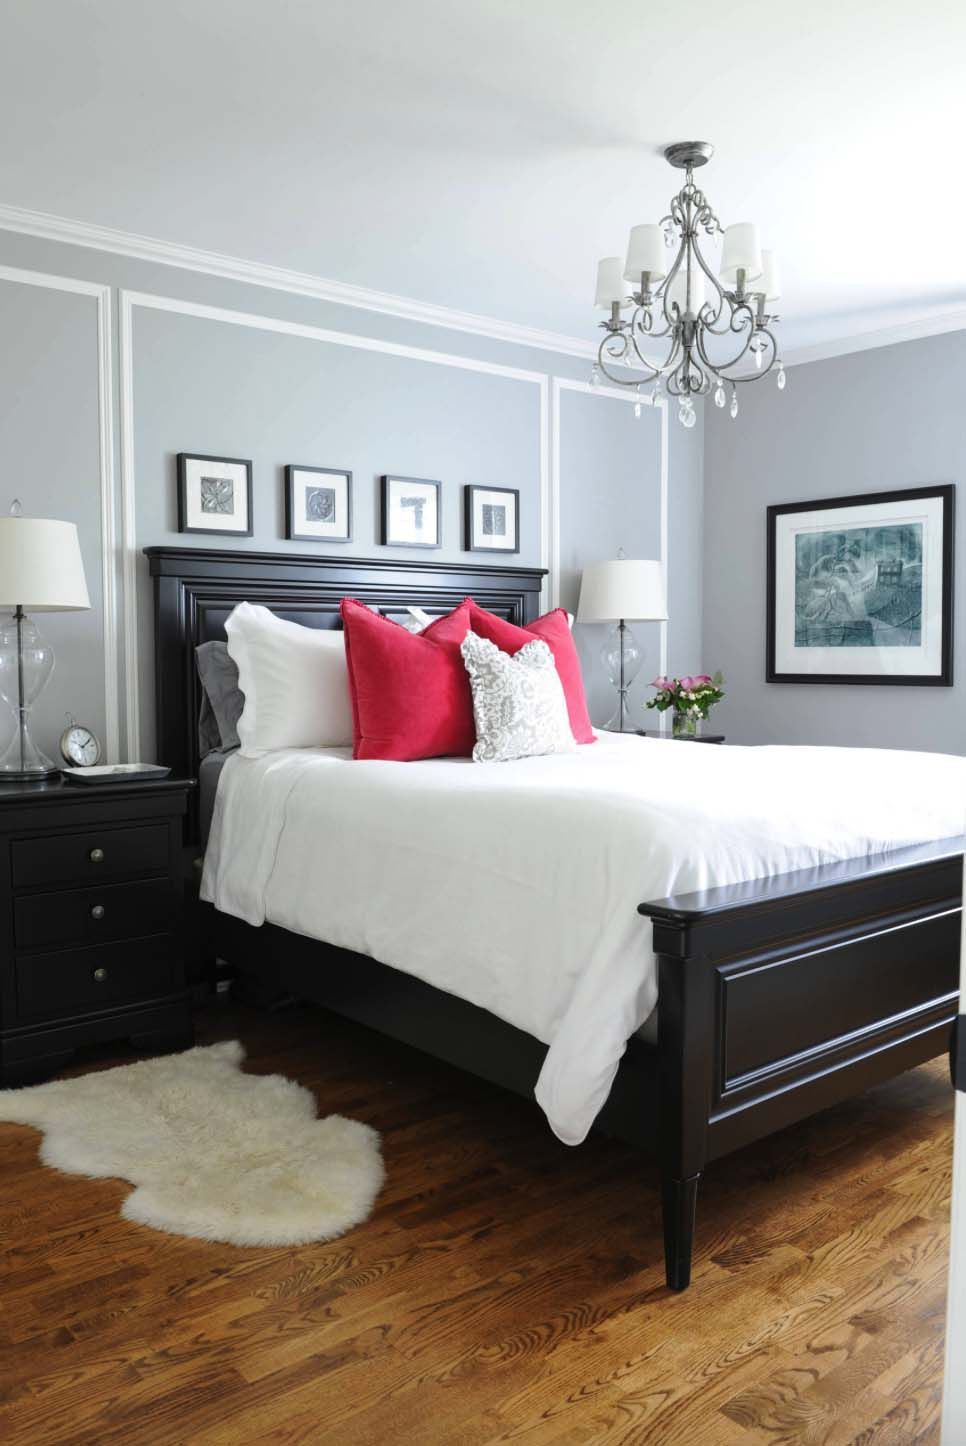 12 Absolutely stunning master bedroom color scheme ideas  Small